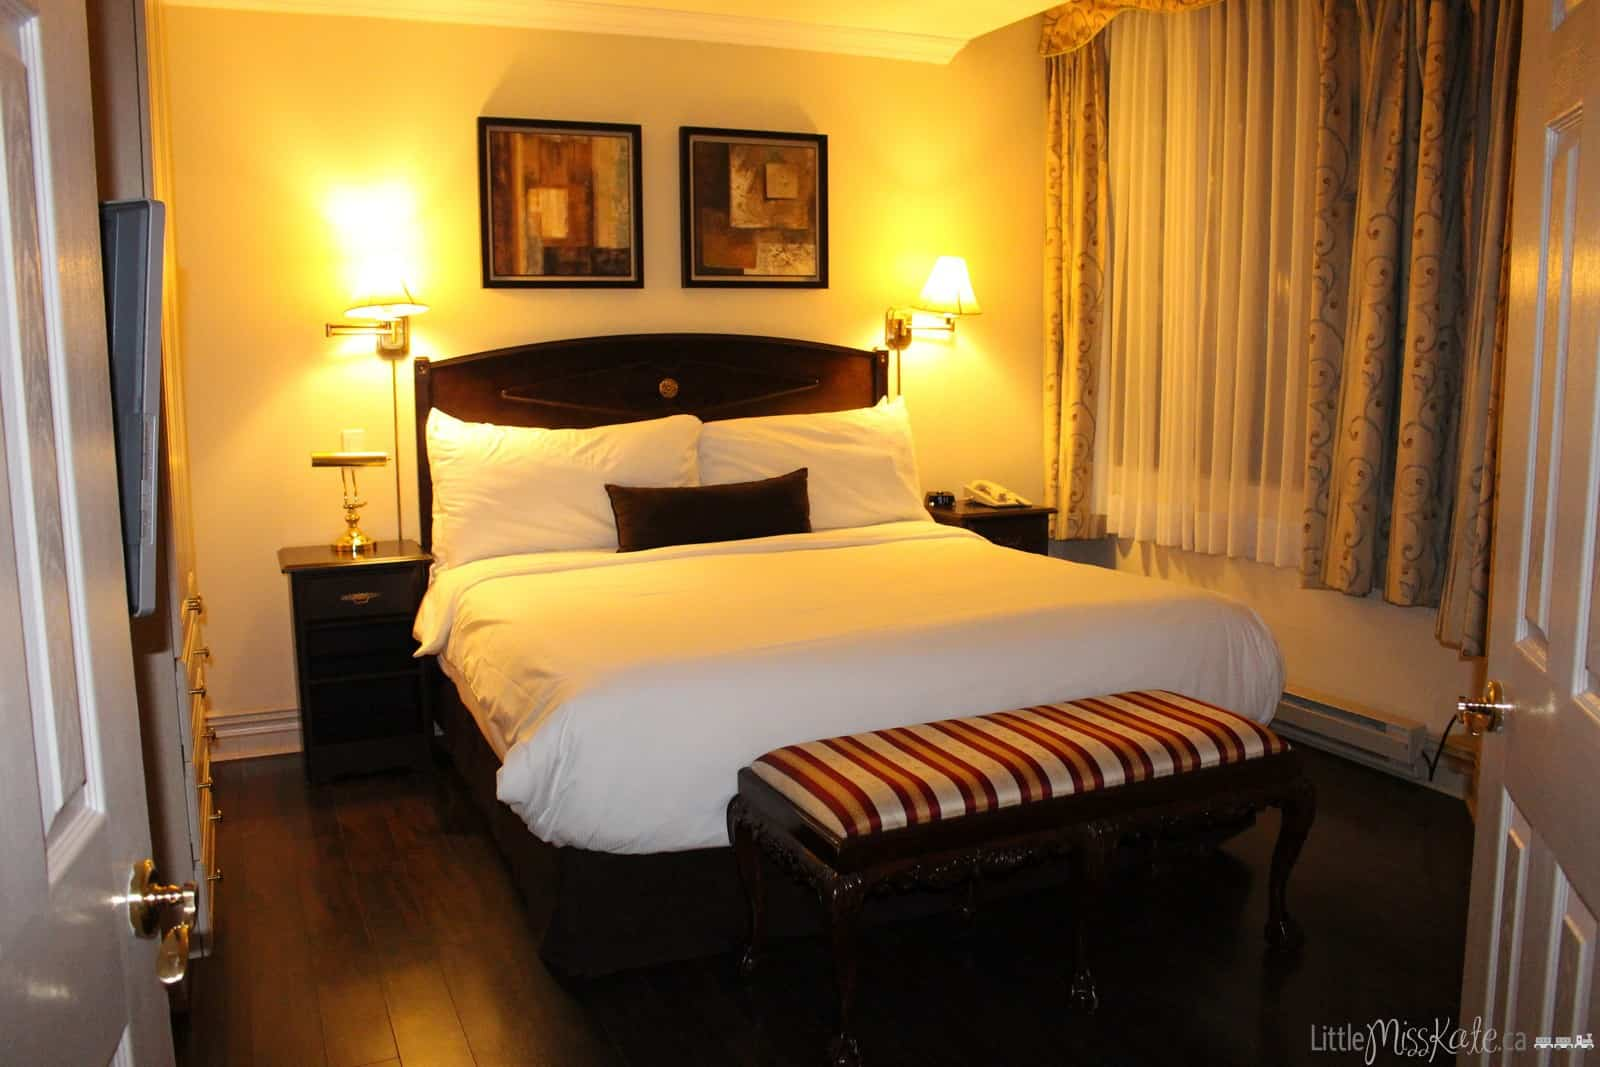 The grand hotel toronto review 2 bedroom suite